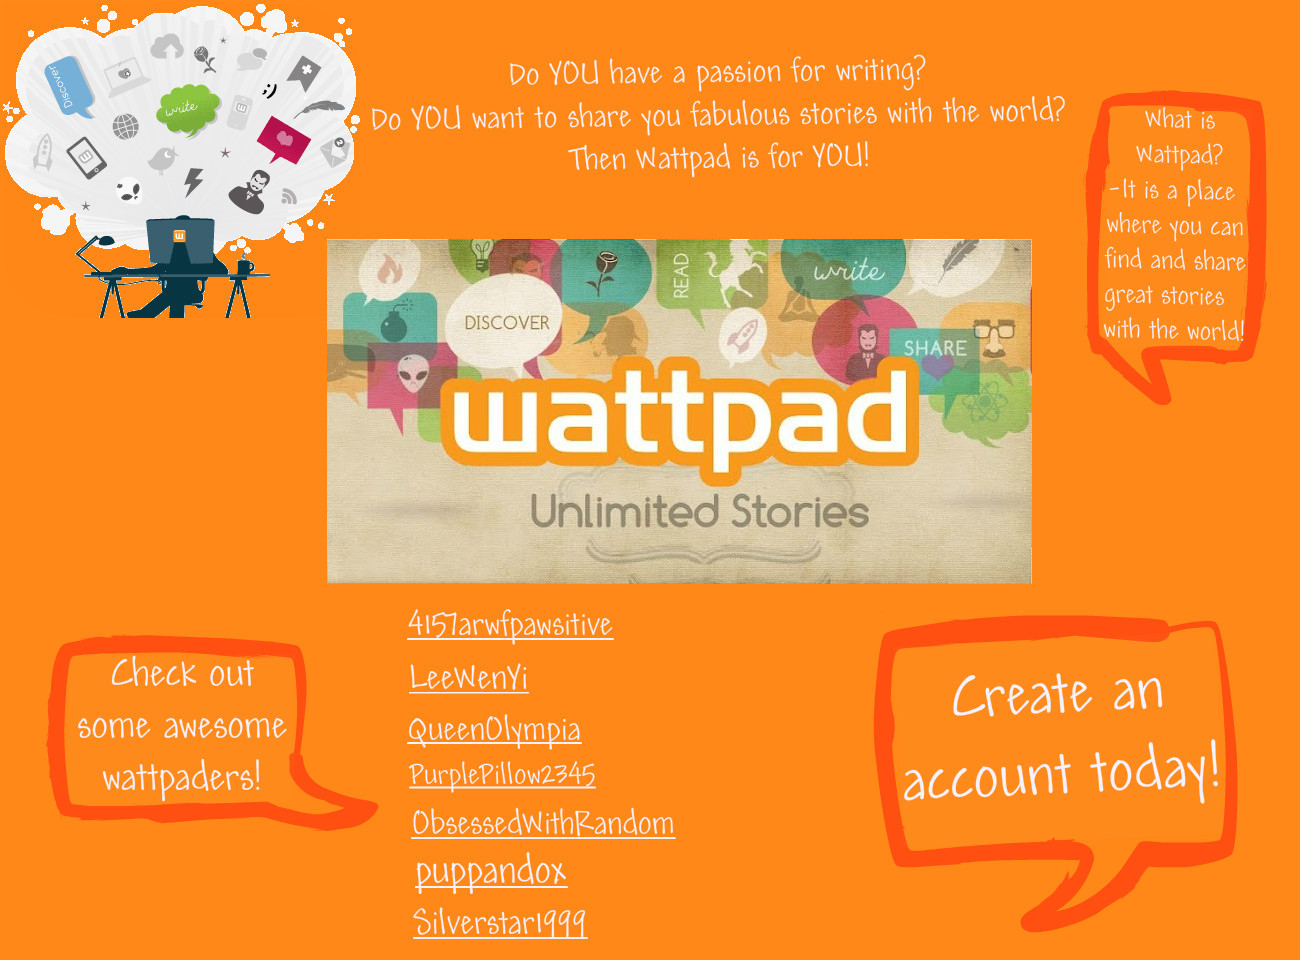 Wattpad: A New Way to Discover and Share Stories